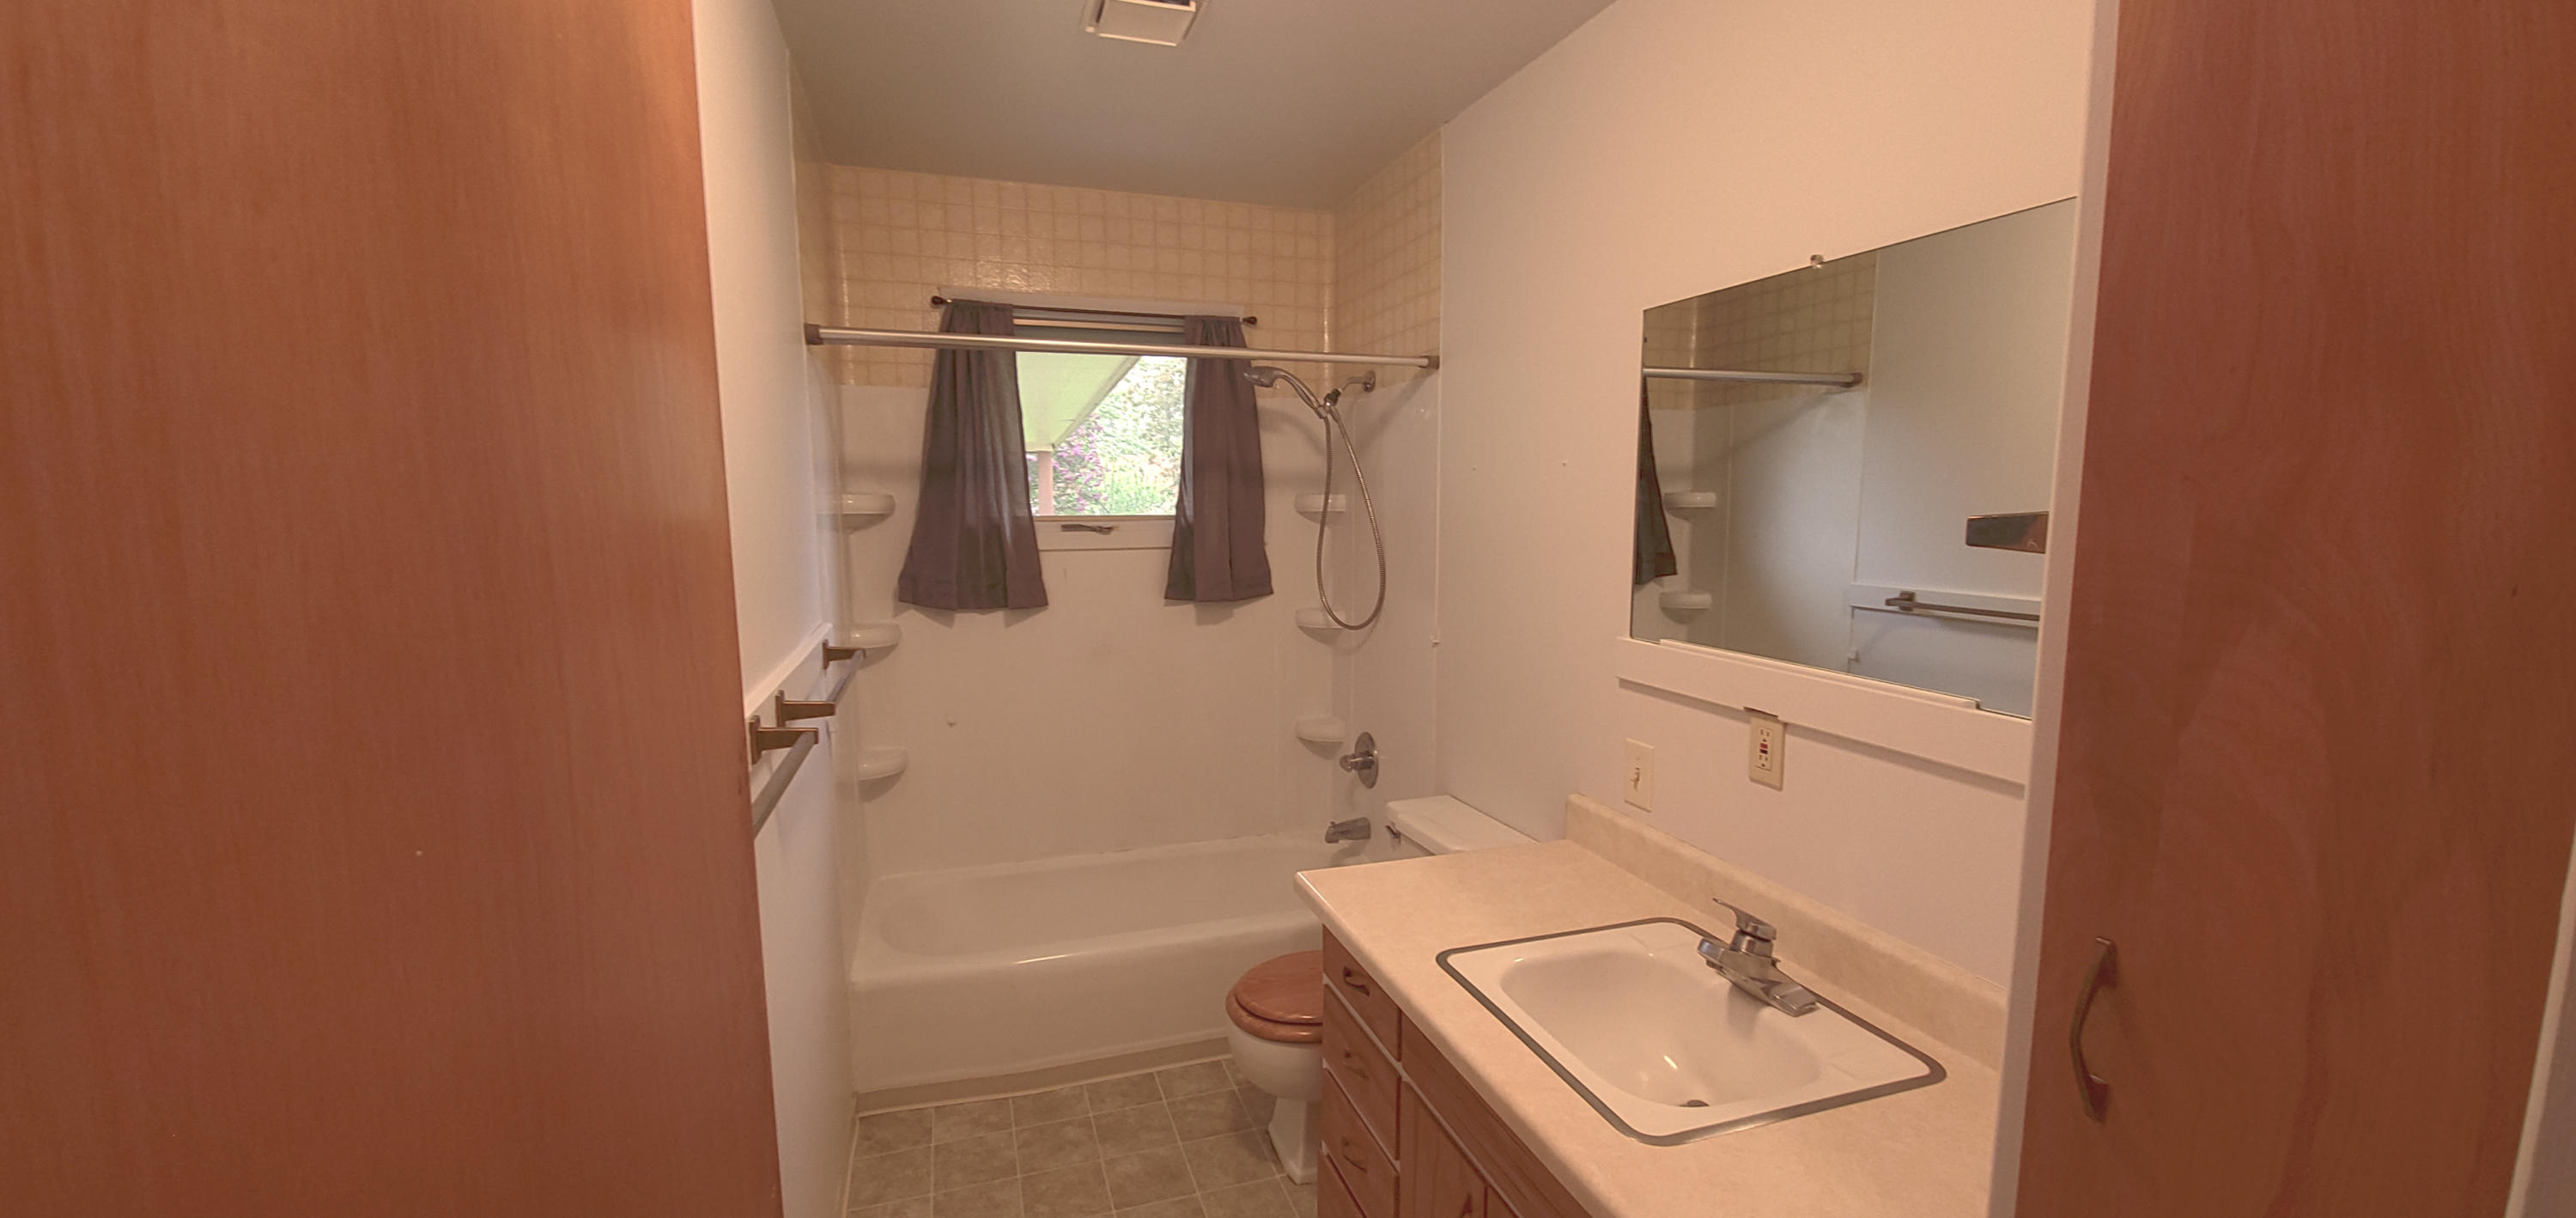 Property Image #22 for MLS #22107444